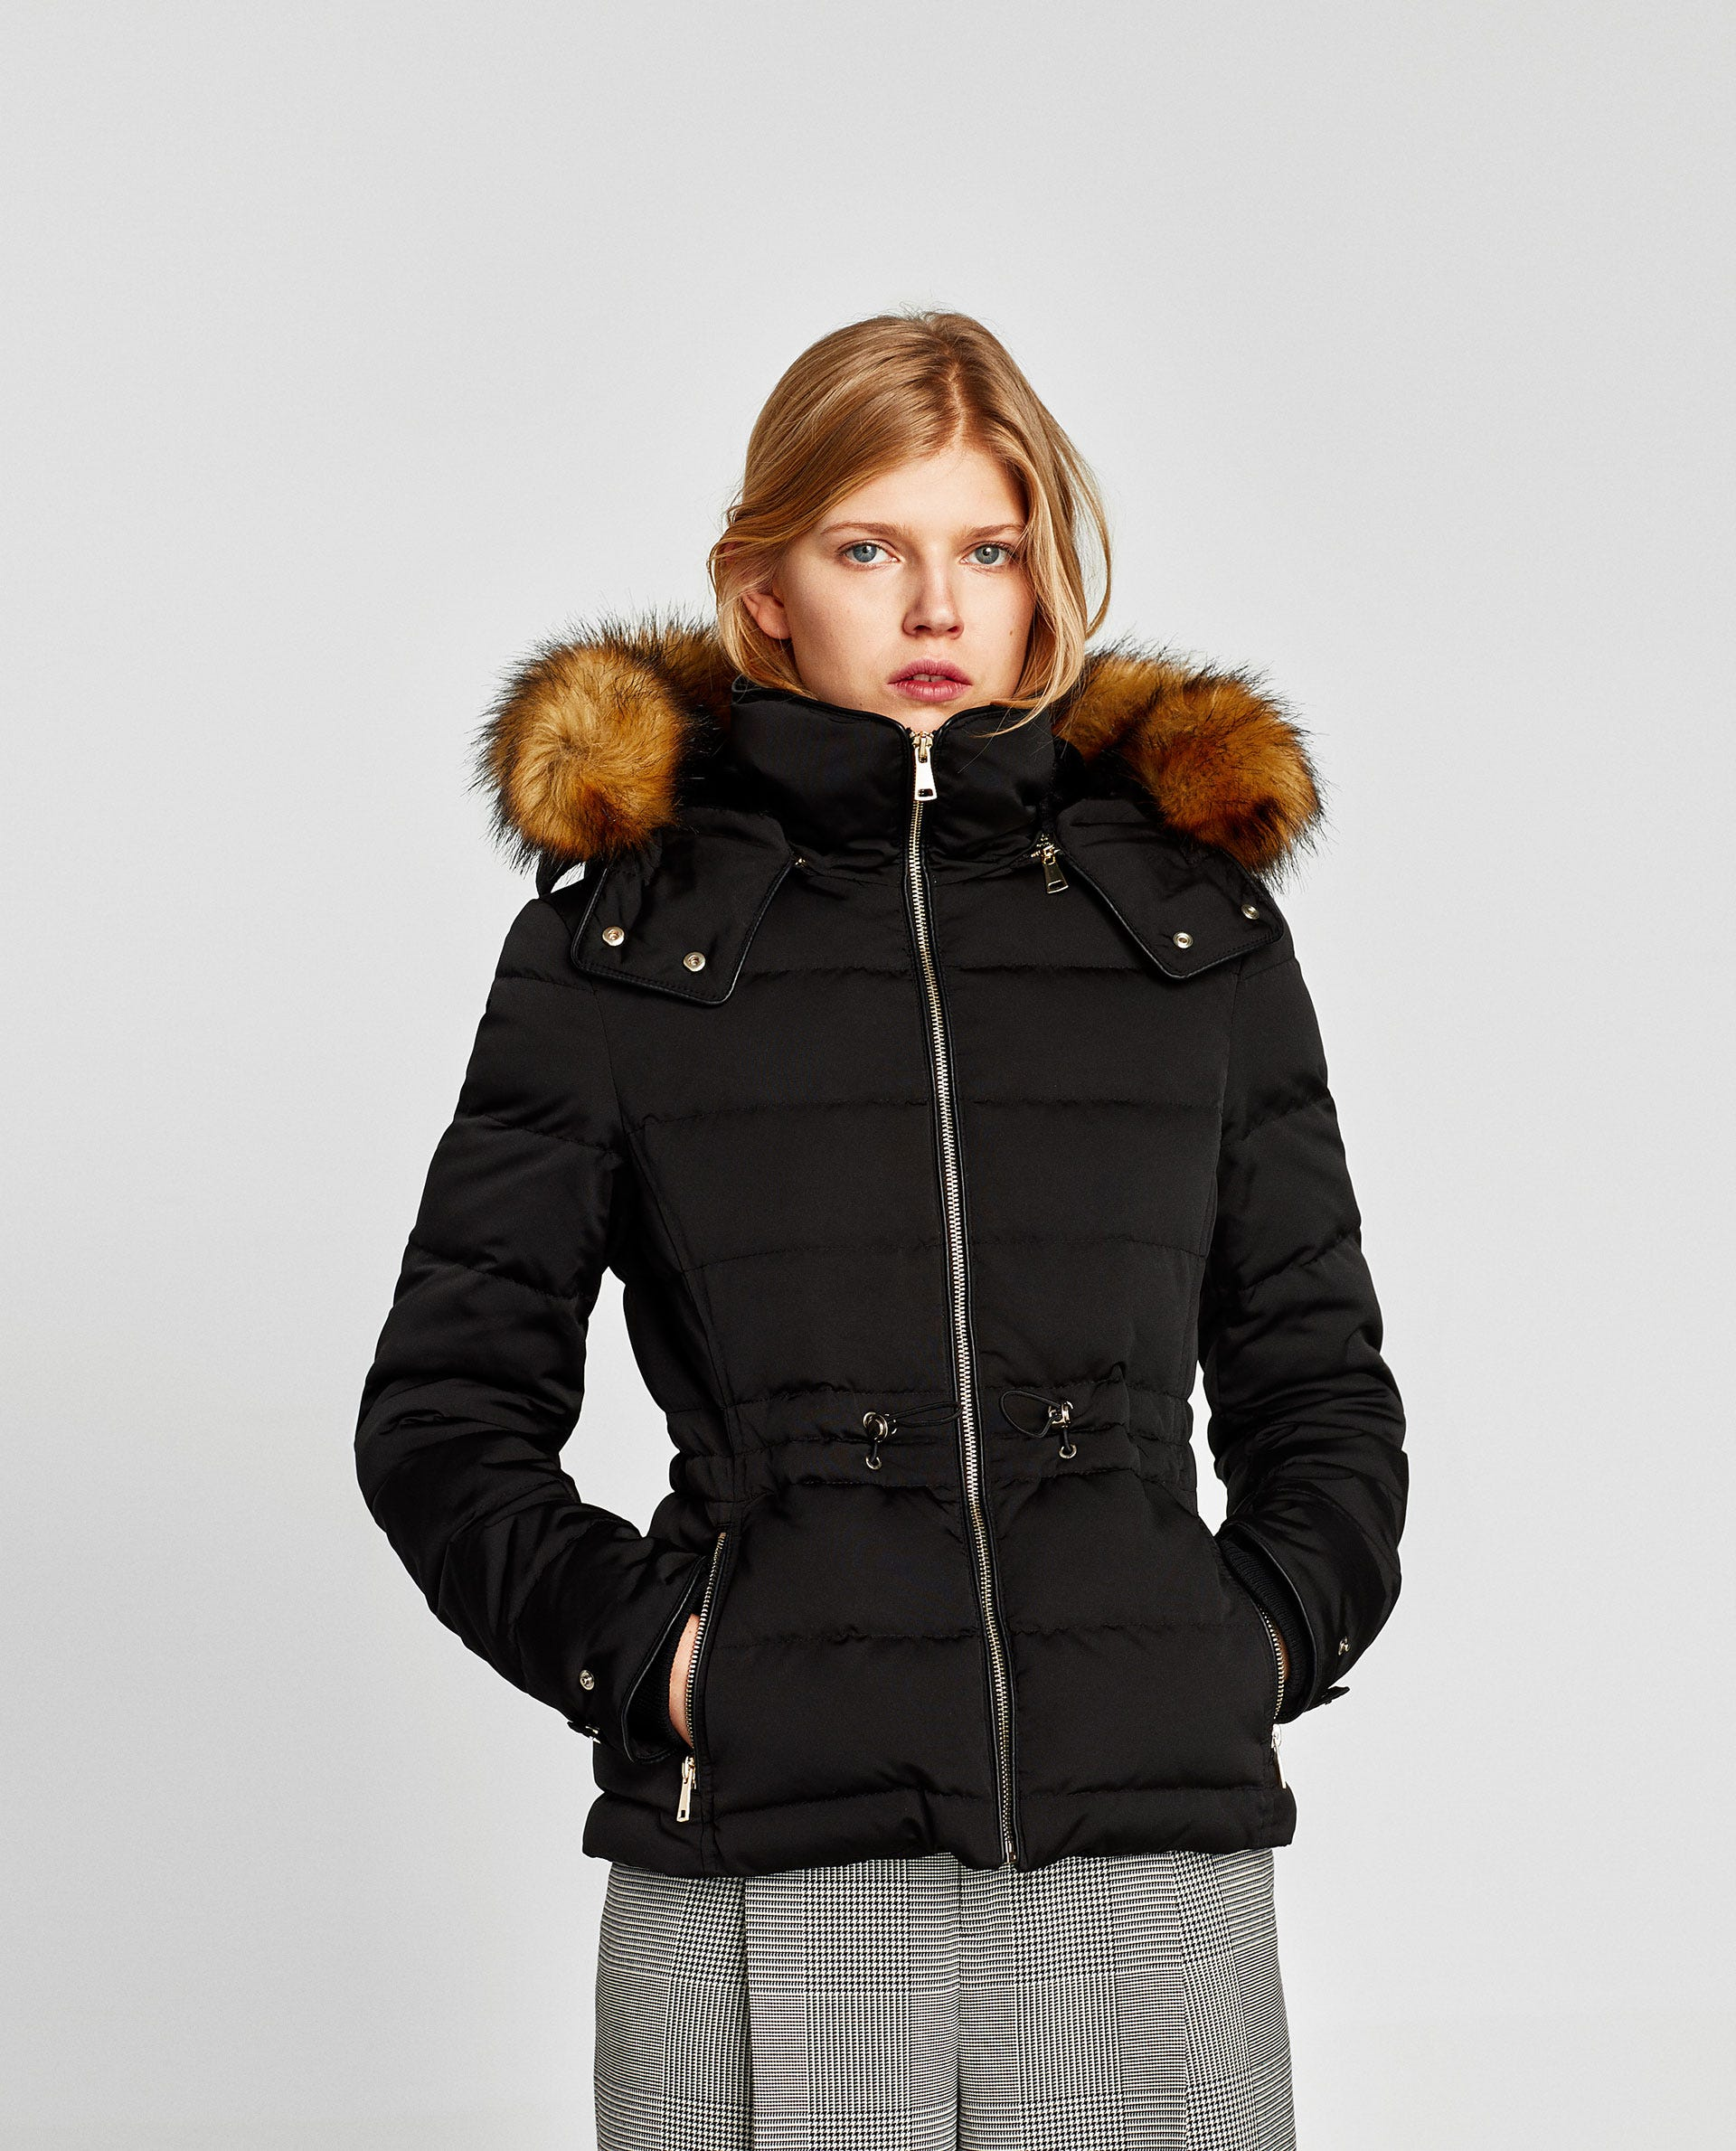 Zara Black Quilted Jacket With Faux Fur Trimmed Hood